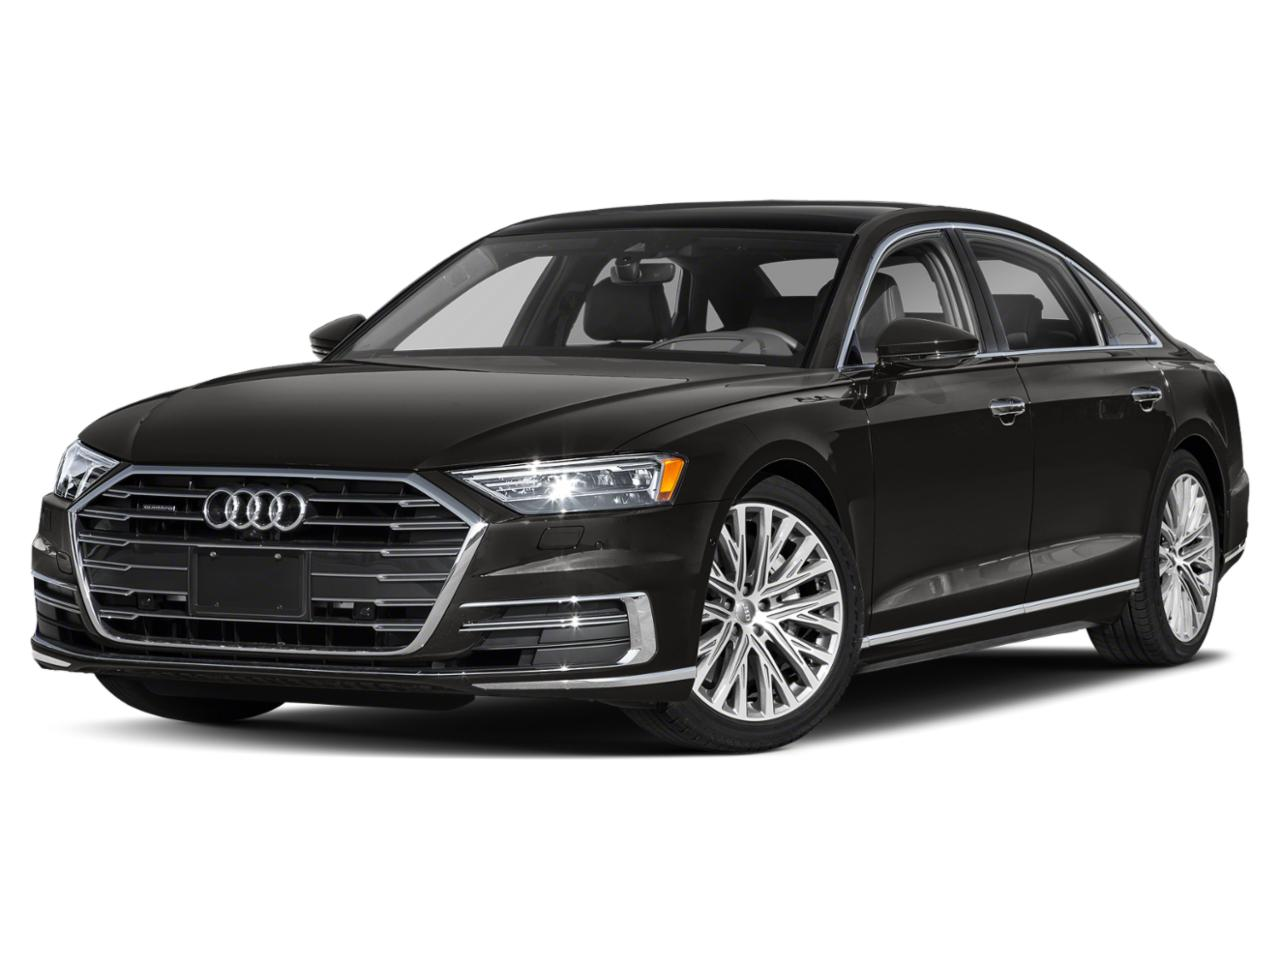 2020 Audi A8 L Vehicle Photo in Houston, TX 77090